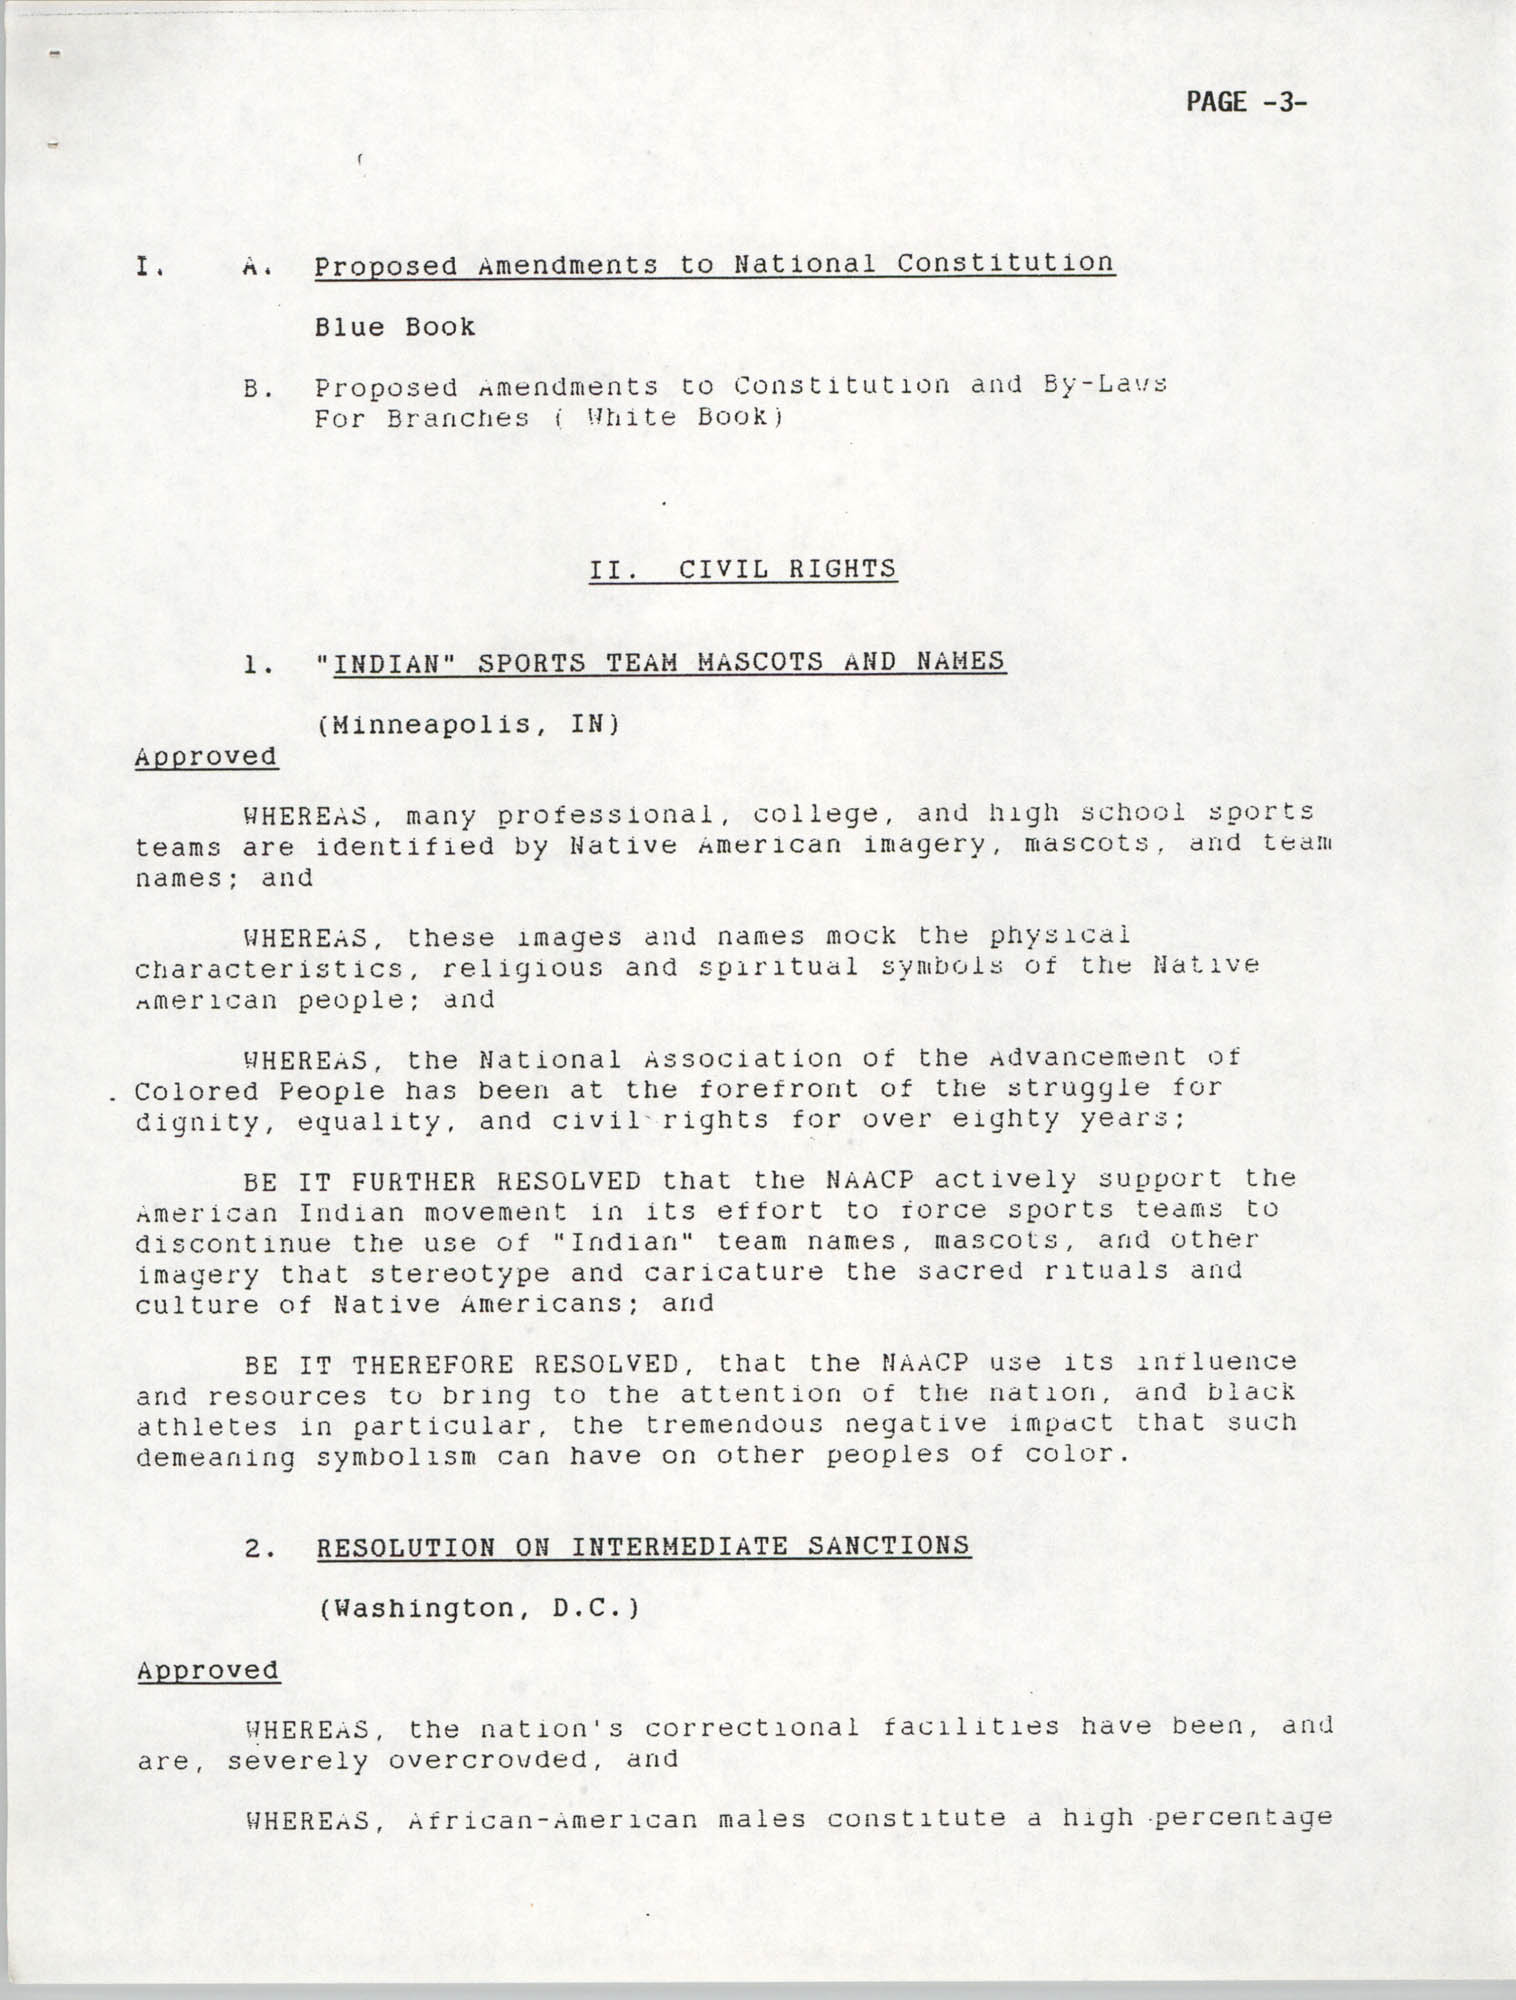 Resolutions Submitted Under Article X, Section 2 of the Constitution of the NAACP, 1992, Page 3